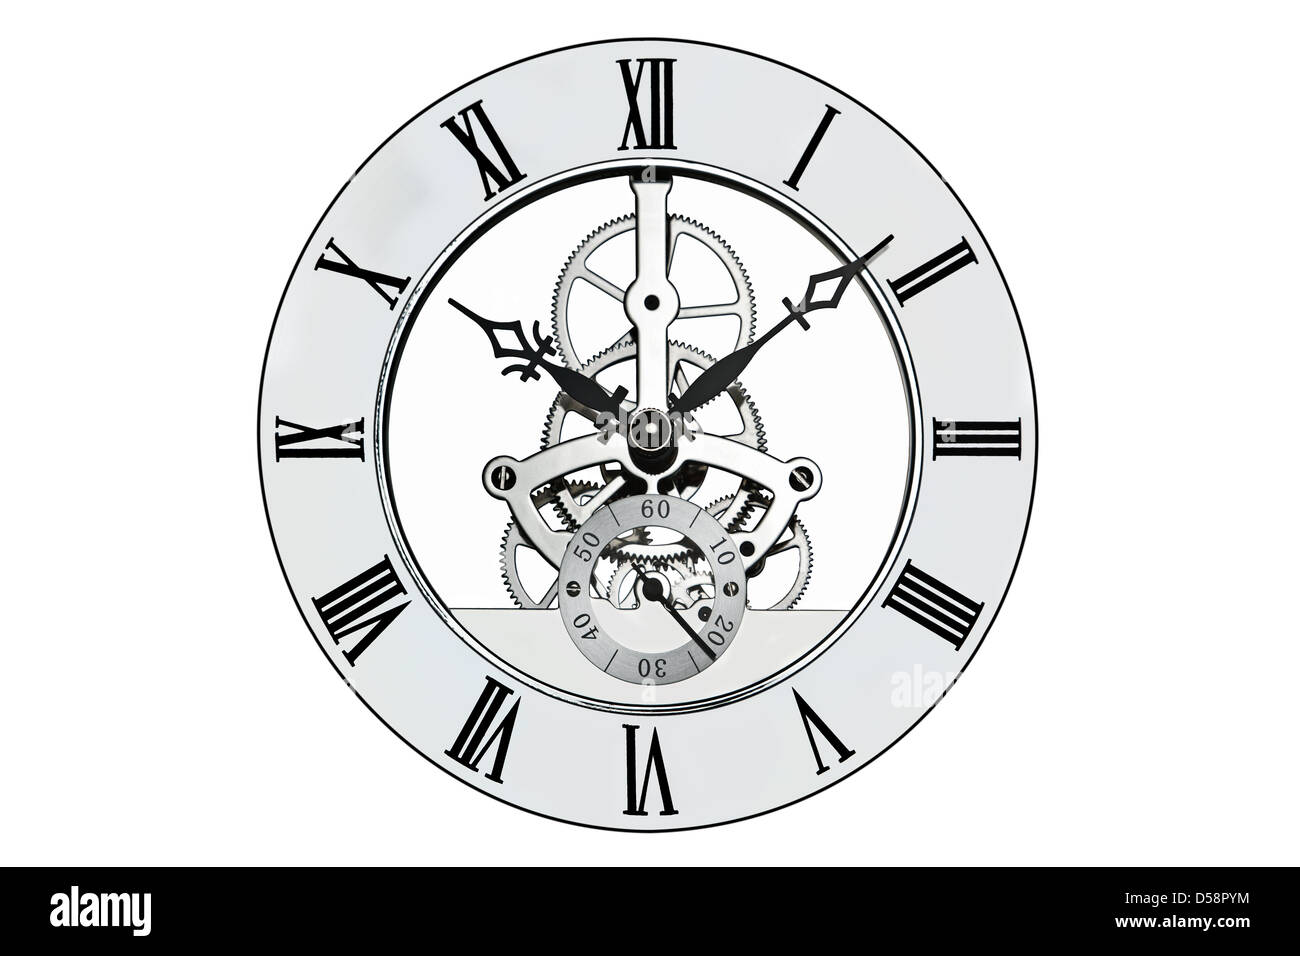 Skeleton clock with roman numerals isolated on a white background. Clipping path provided for the outer face. - Stock Image